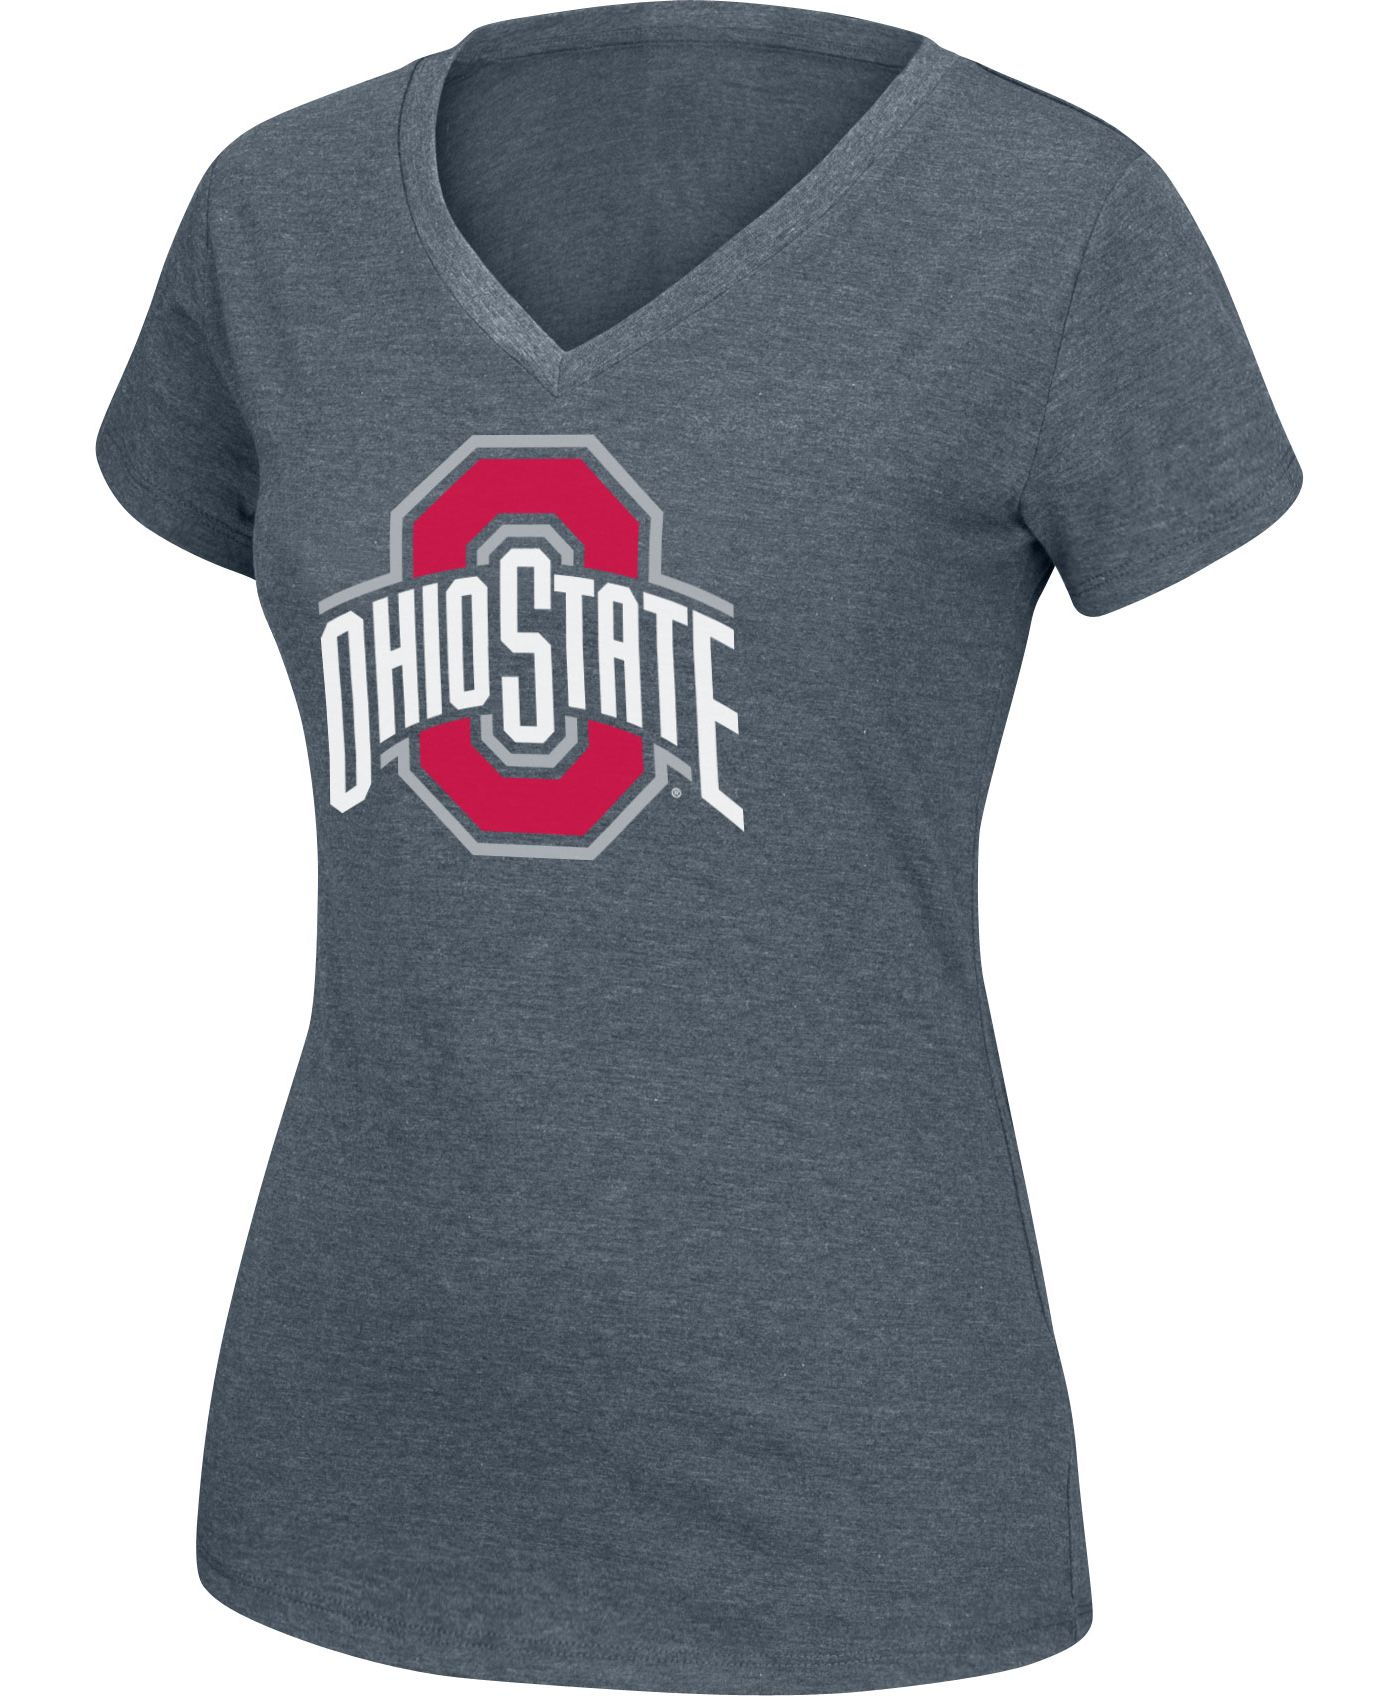 Scarlet & Gray Women's Ohio State Buckeyes Gray Favorite V-Neck Tee